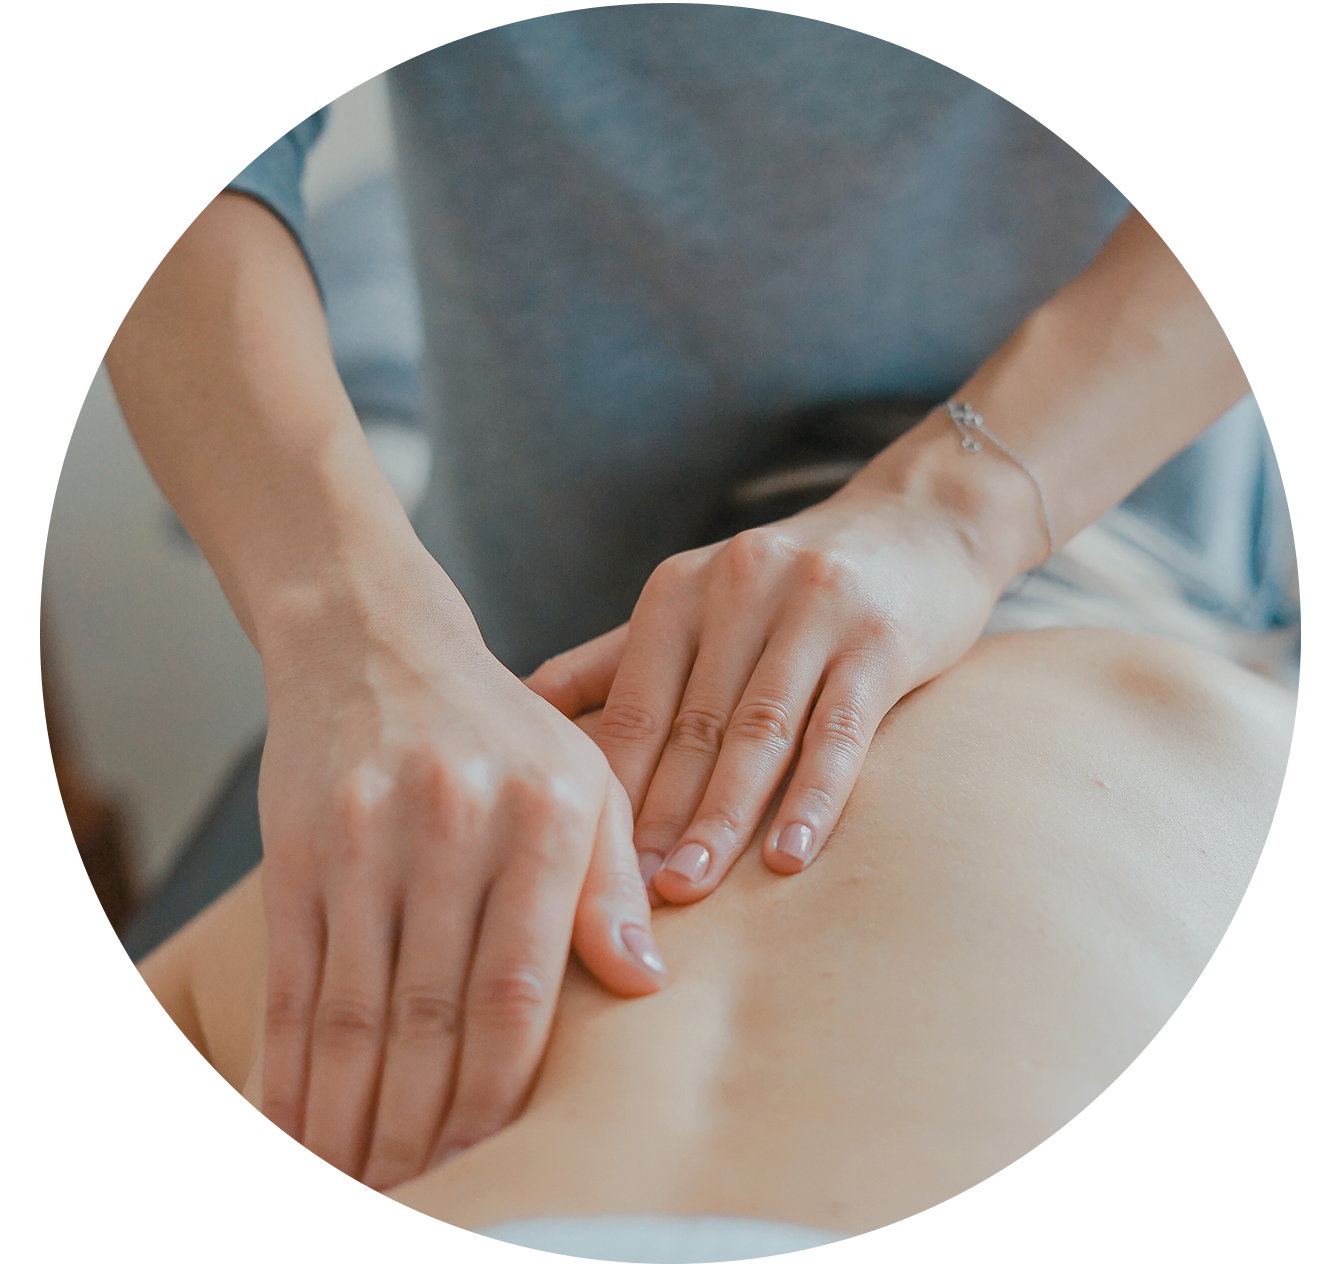 Osteopathy - Using manual therapy techniques our osteopaths will address areas of pain or injury by re-balancing the biomechanics of your posture.